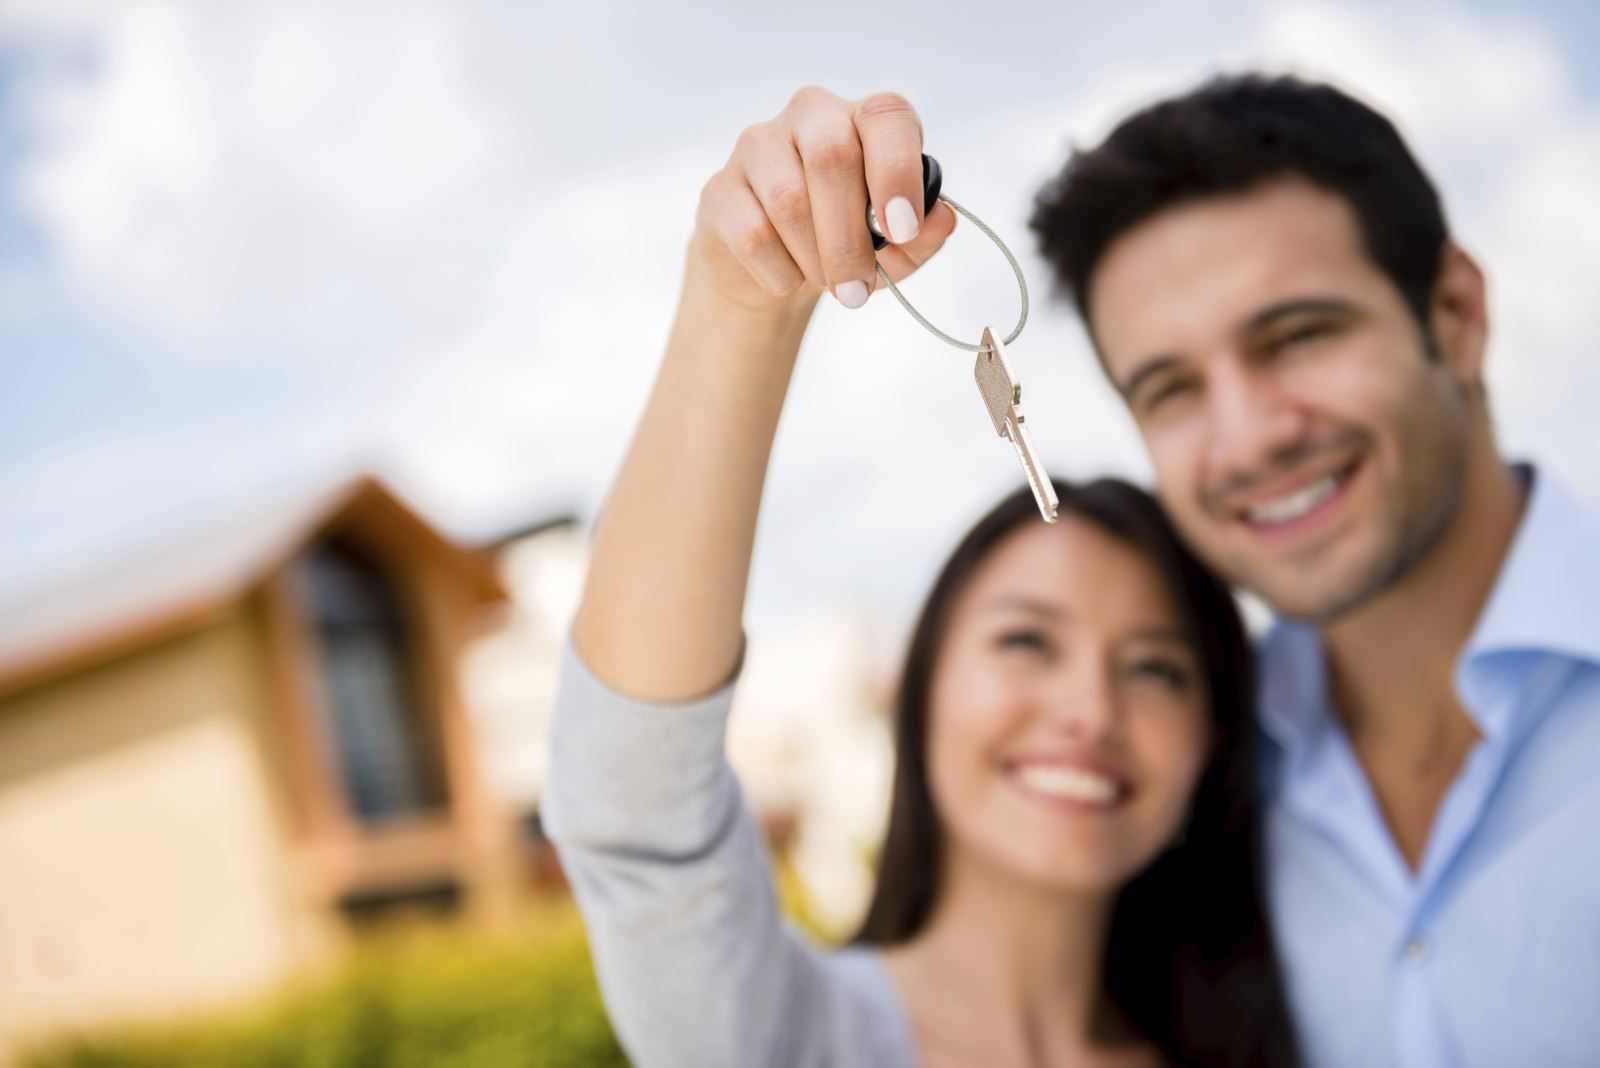 Homeowners still over-optimistic on home values says Quicken Loans